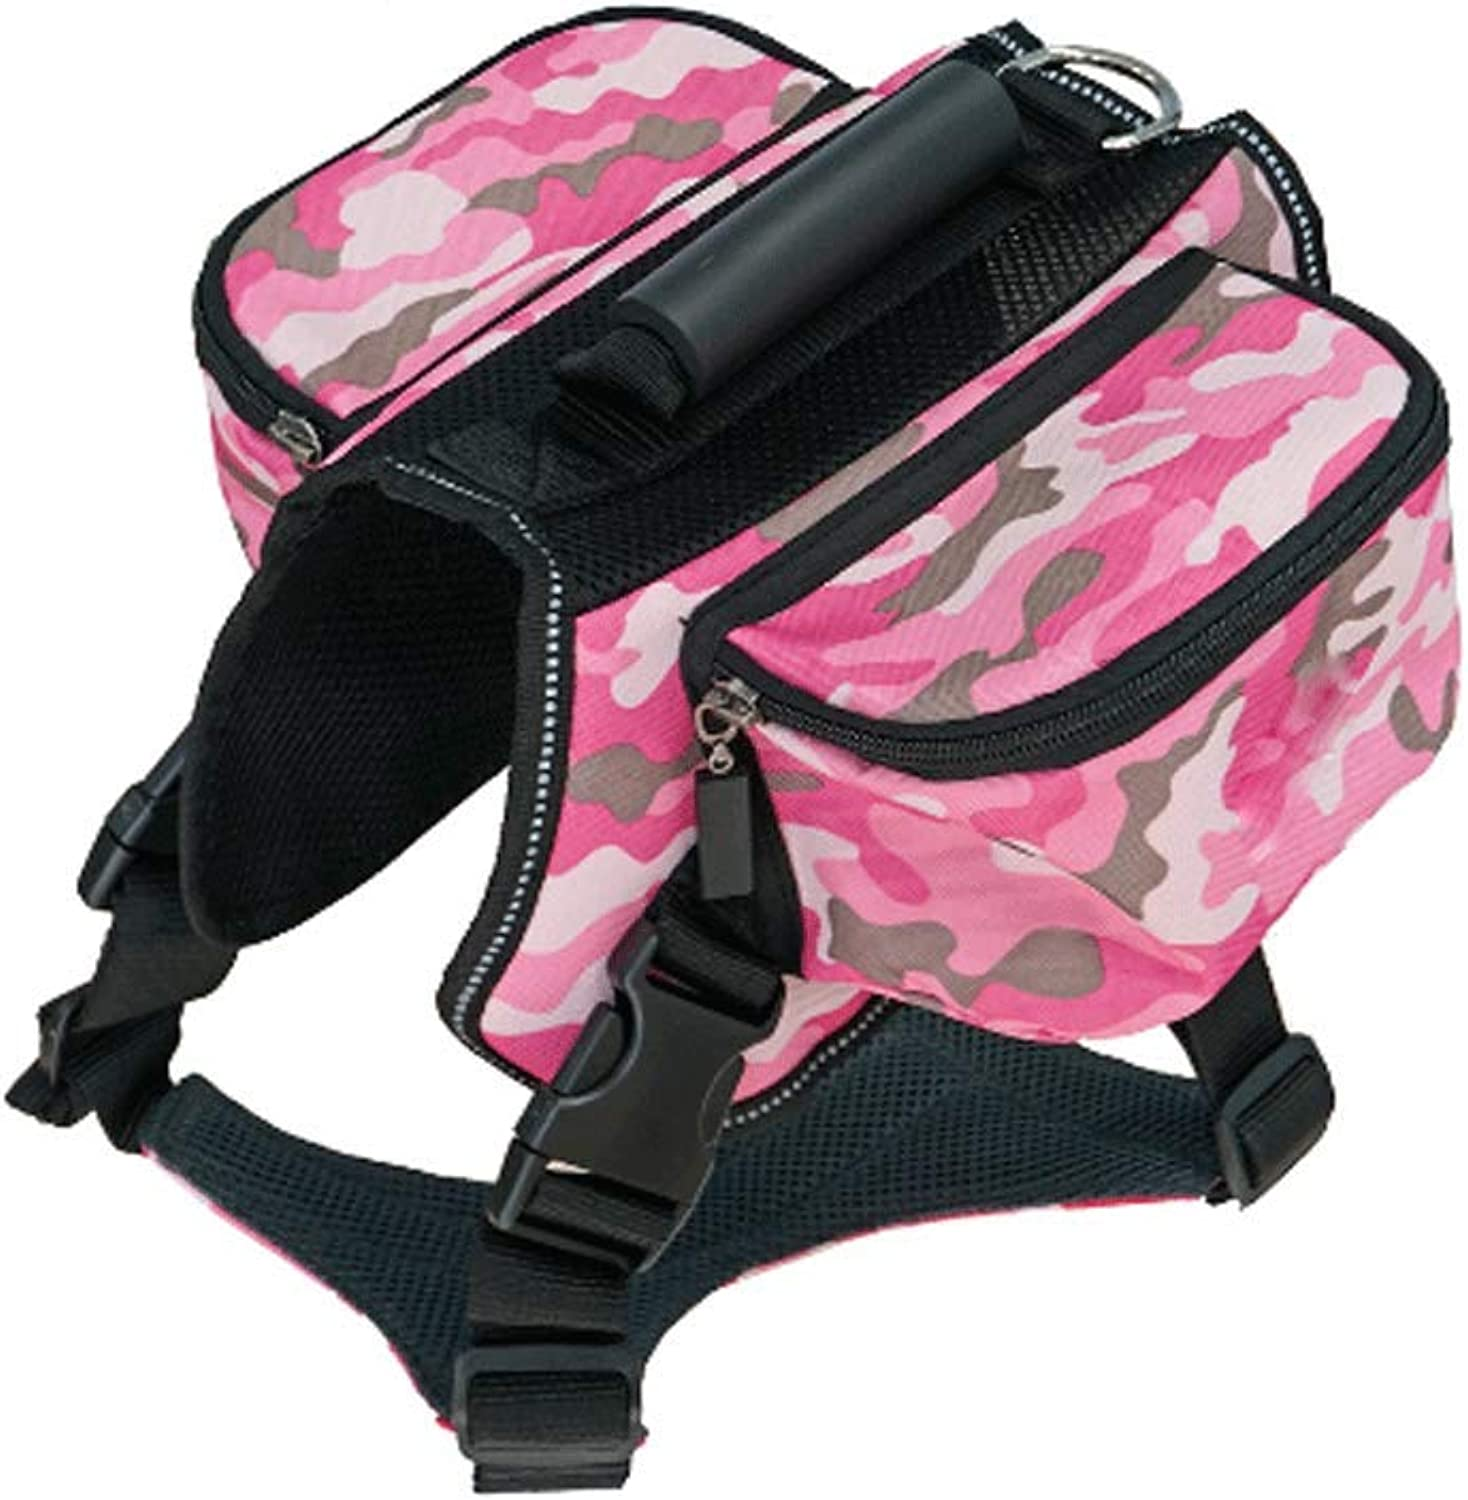 GJ Pet Out Travel Camouflage From Backpack Large Dog Outdoor Self Bag Shoulder Tow Backpack (color   Pink camouflage, Size   Xl)